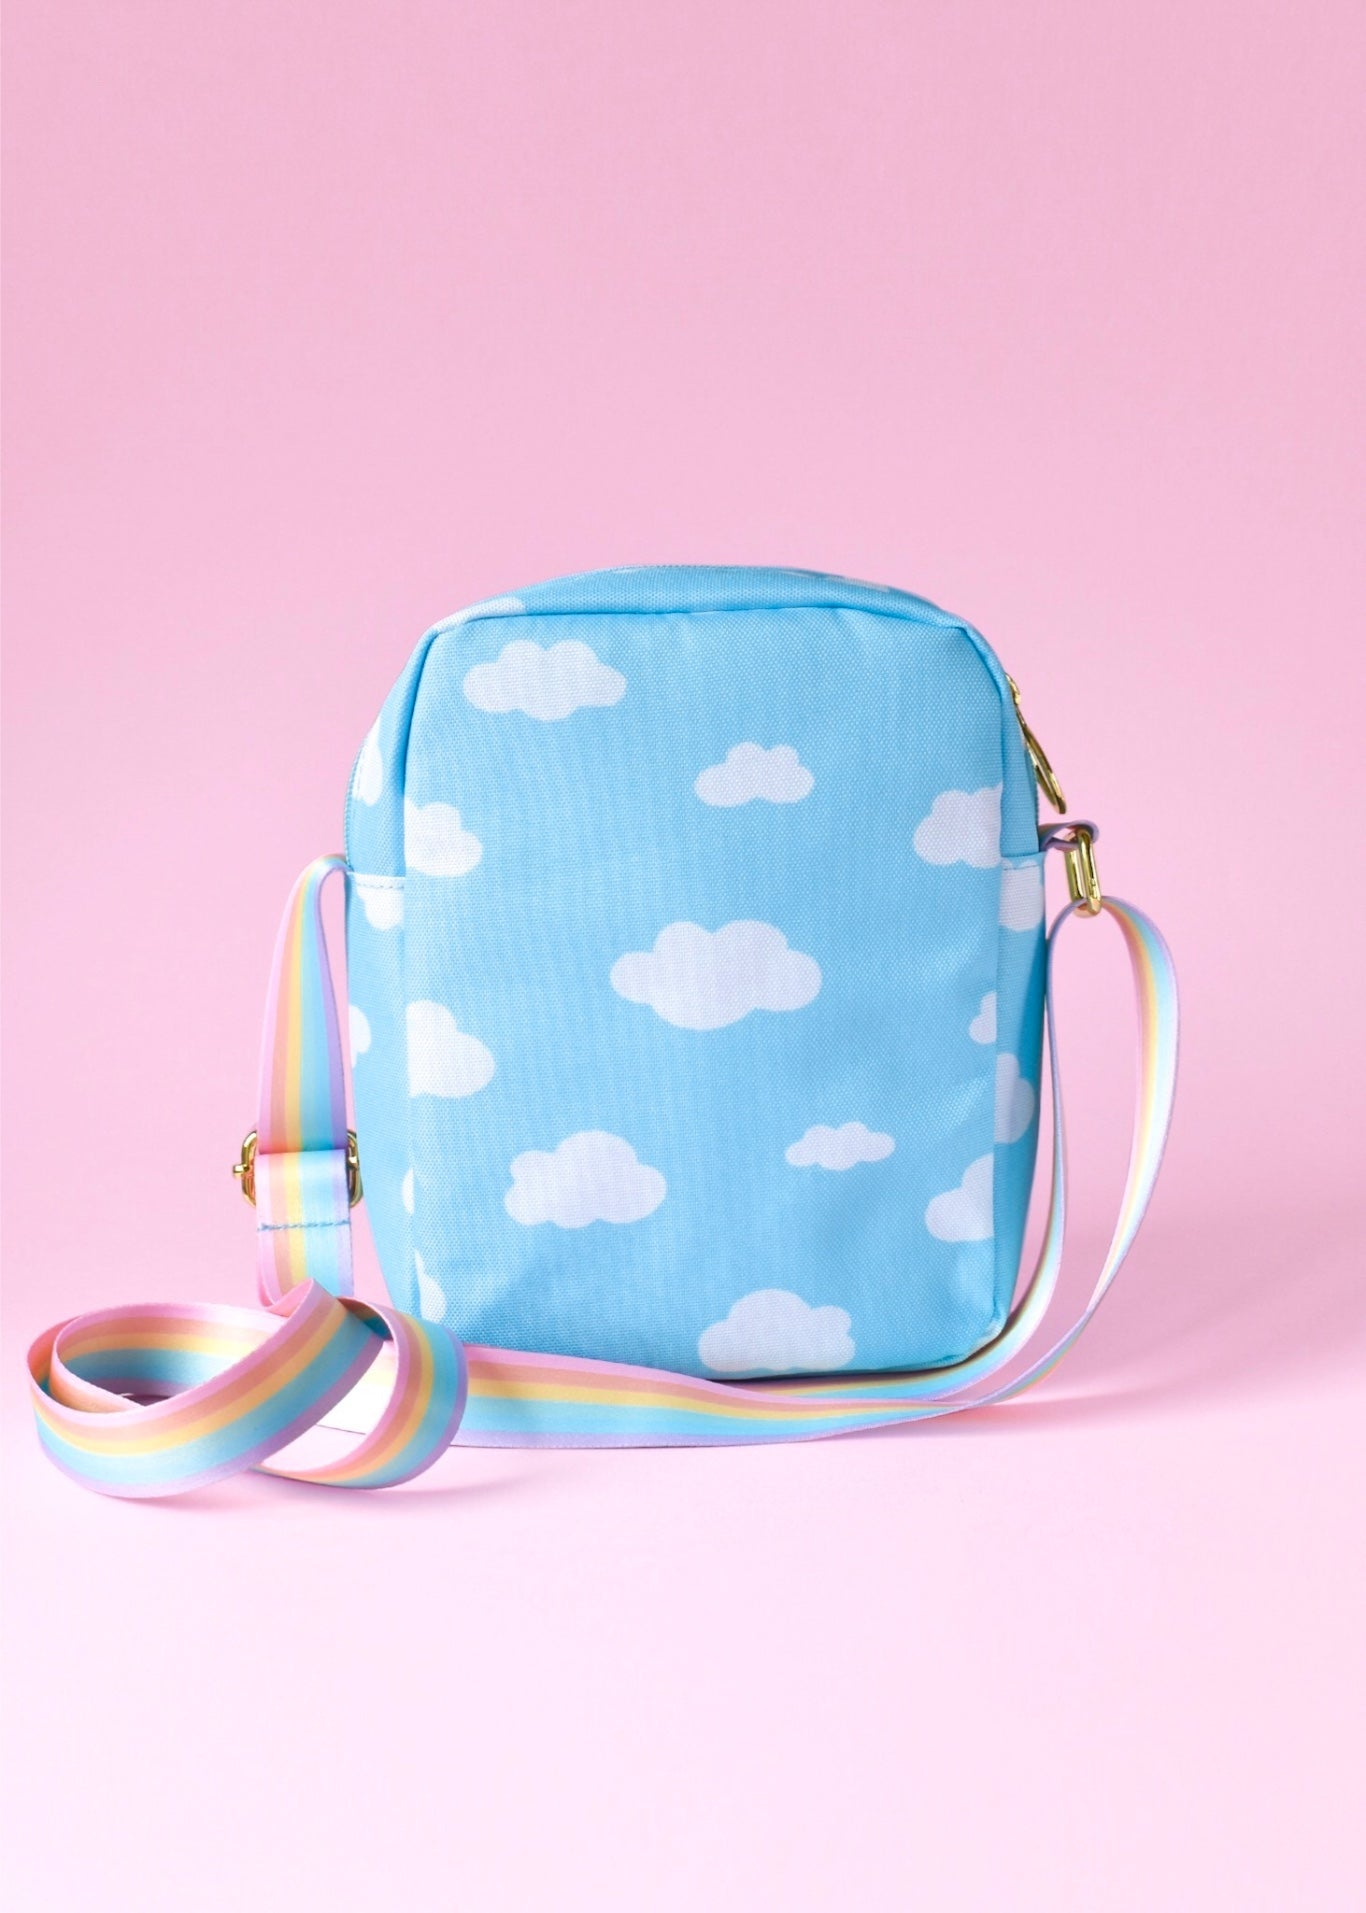 Rainbow Sky Shoulder Bag